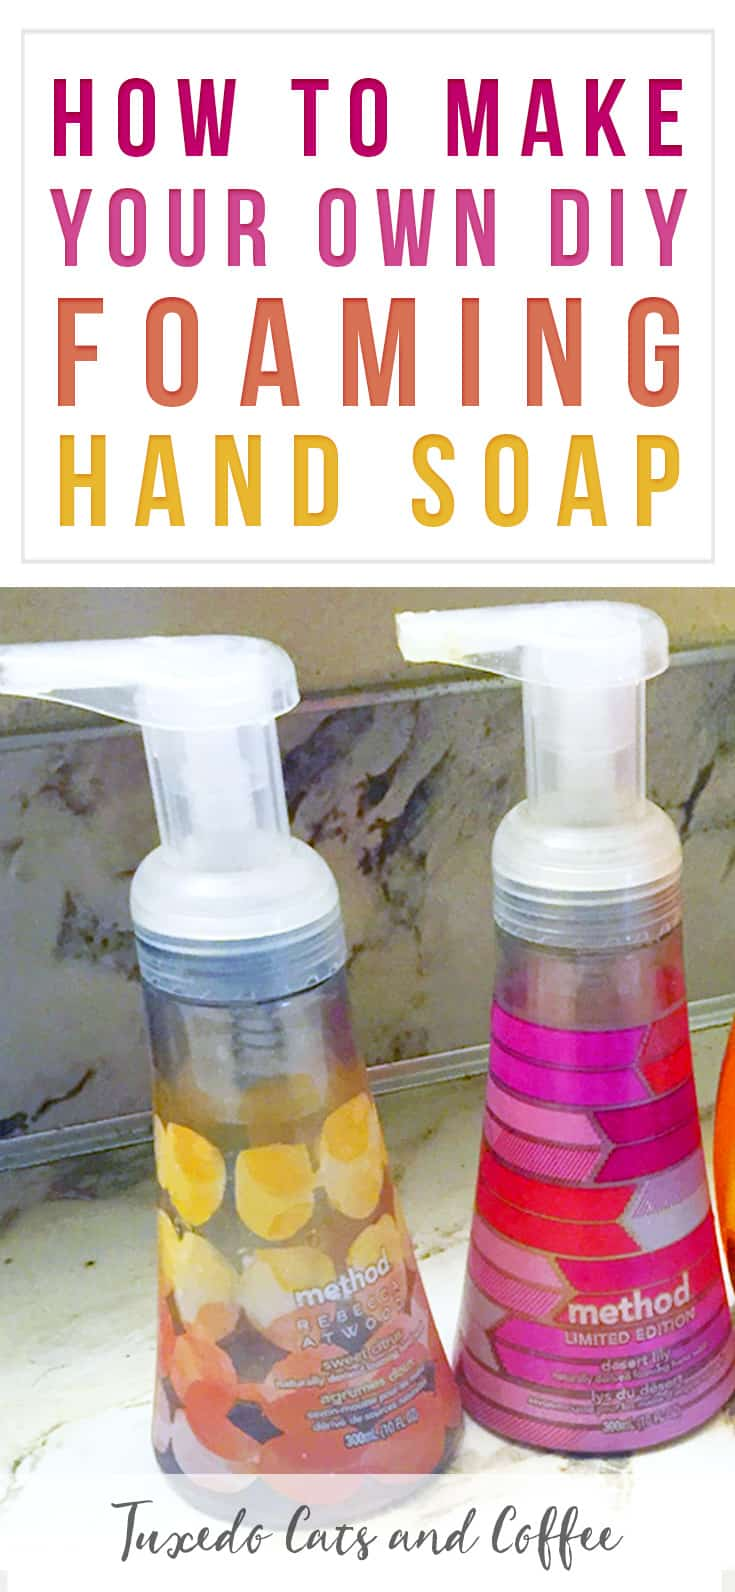 It's easy to make your own DIY foaming hand soap once you know the secret. 😃 In this quick post I'll show you how to make your own DIY foaming hand soap for just pennies per refill so you can save money!